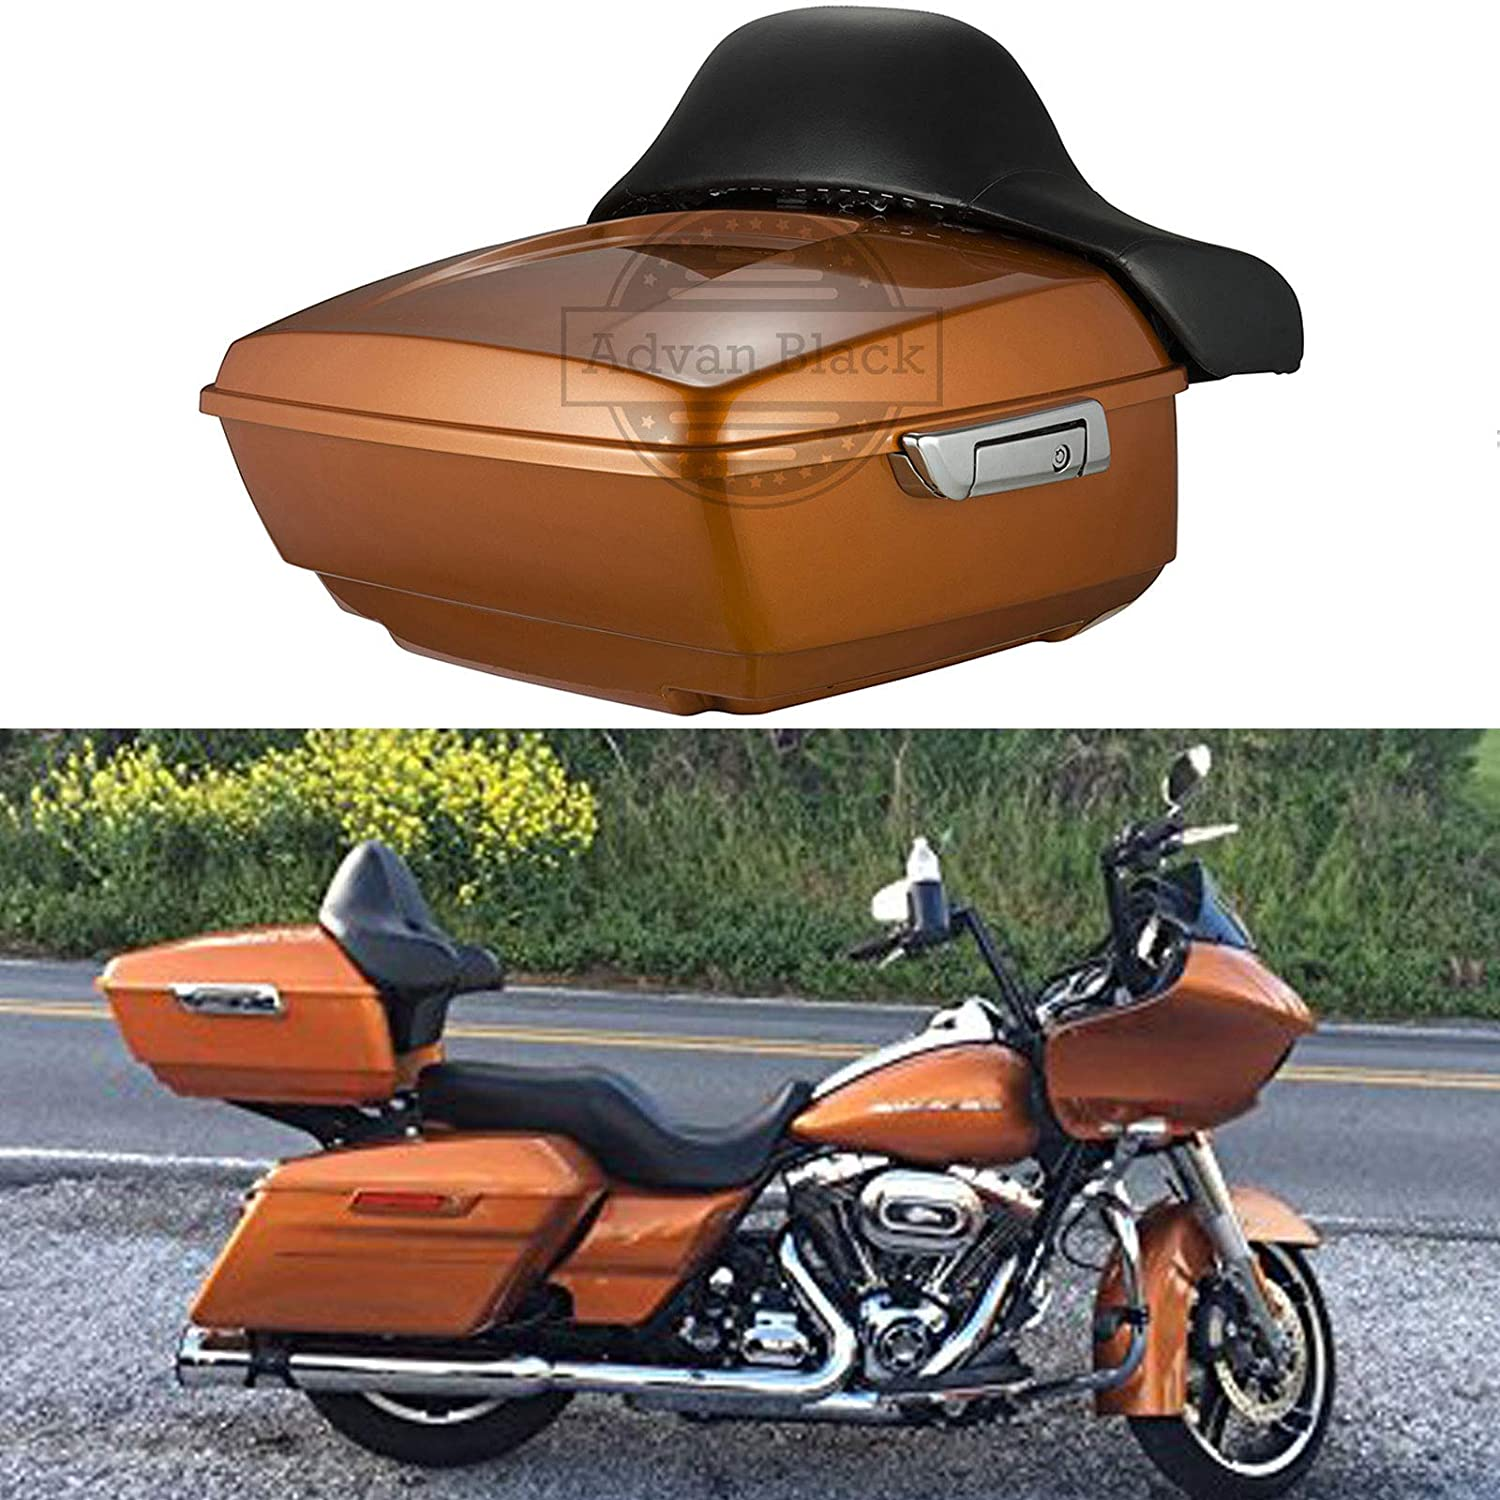 Amber Whiskey King Tour Pack Luggage Trunk Fit for Harley Davidson Touring  Road Glide Street Glide Special Electra Glide 2014 2015 2016 2017 2018 2019